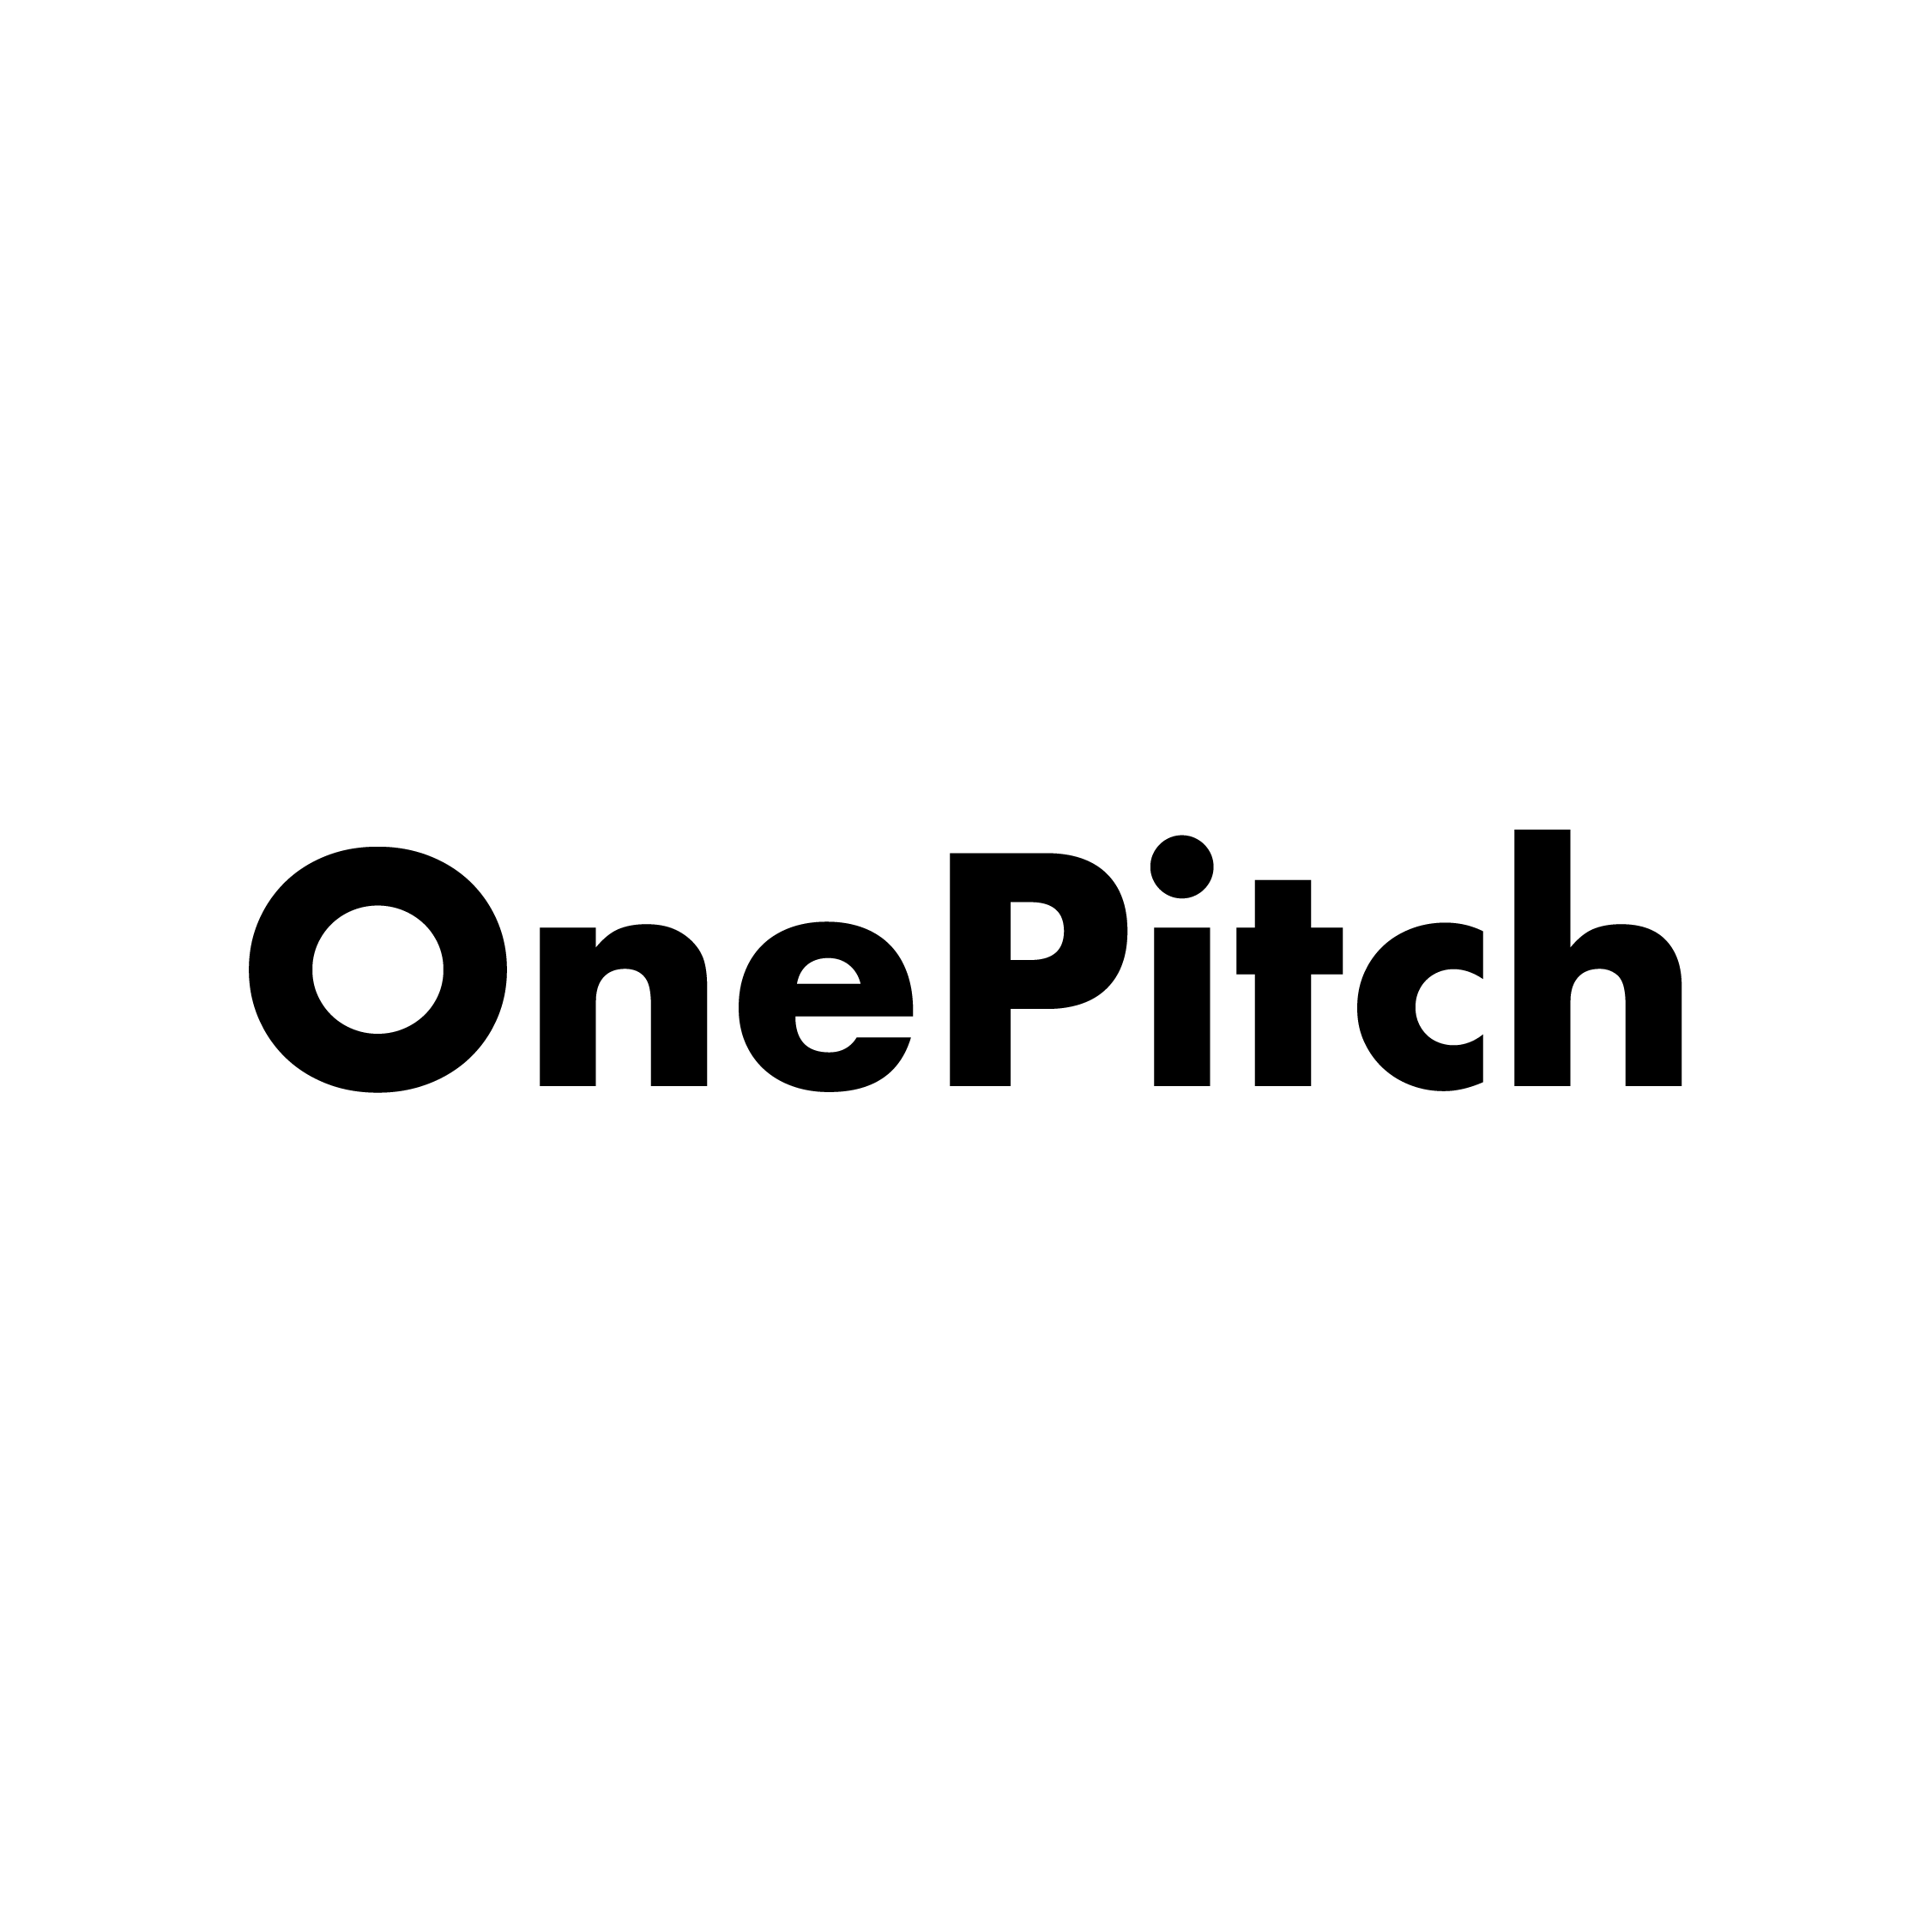 OnePitch public relations software